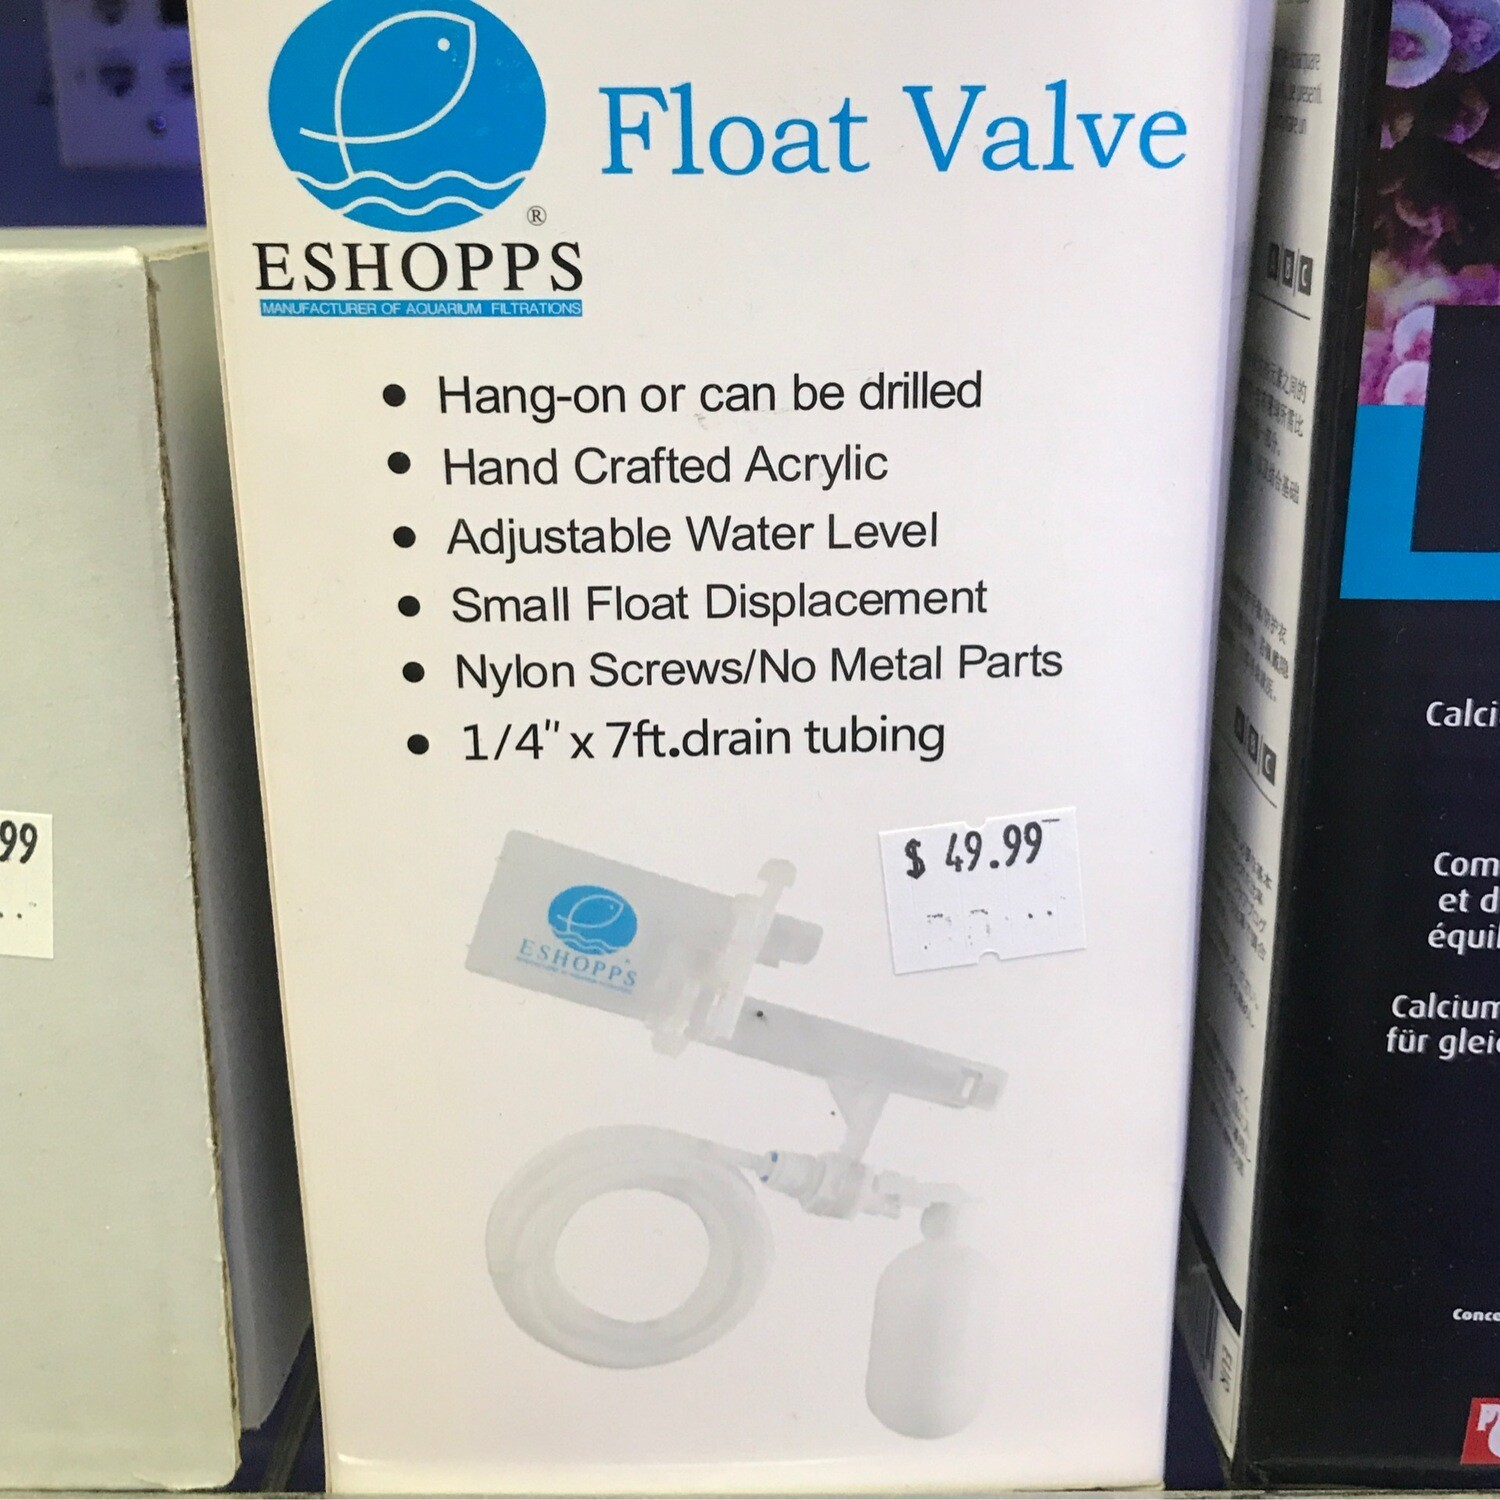 Eshopps Float Valve